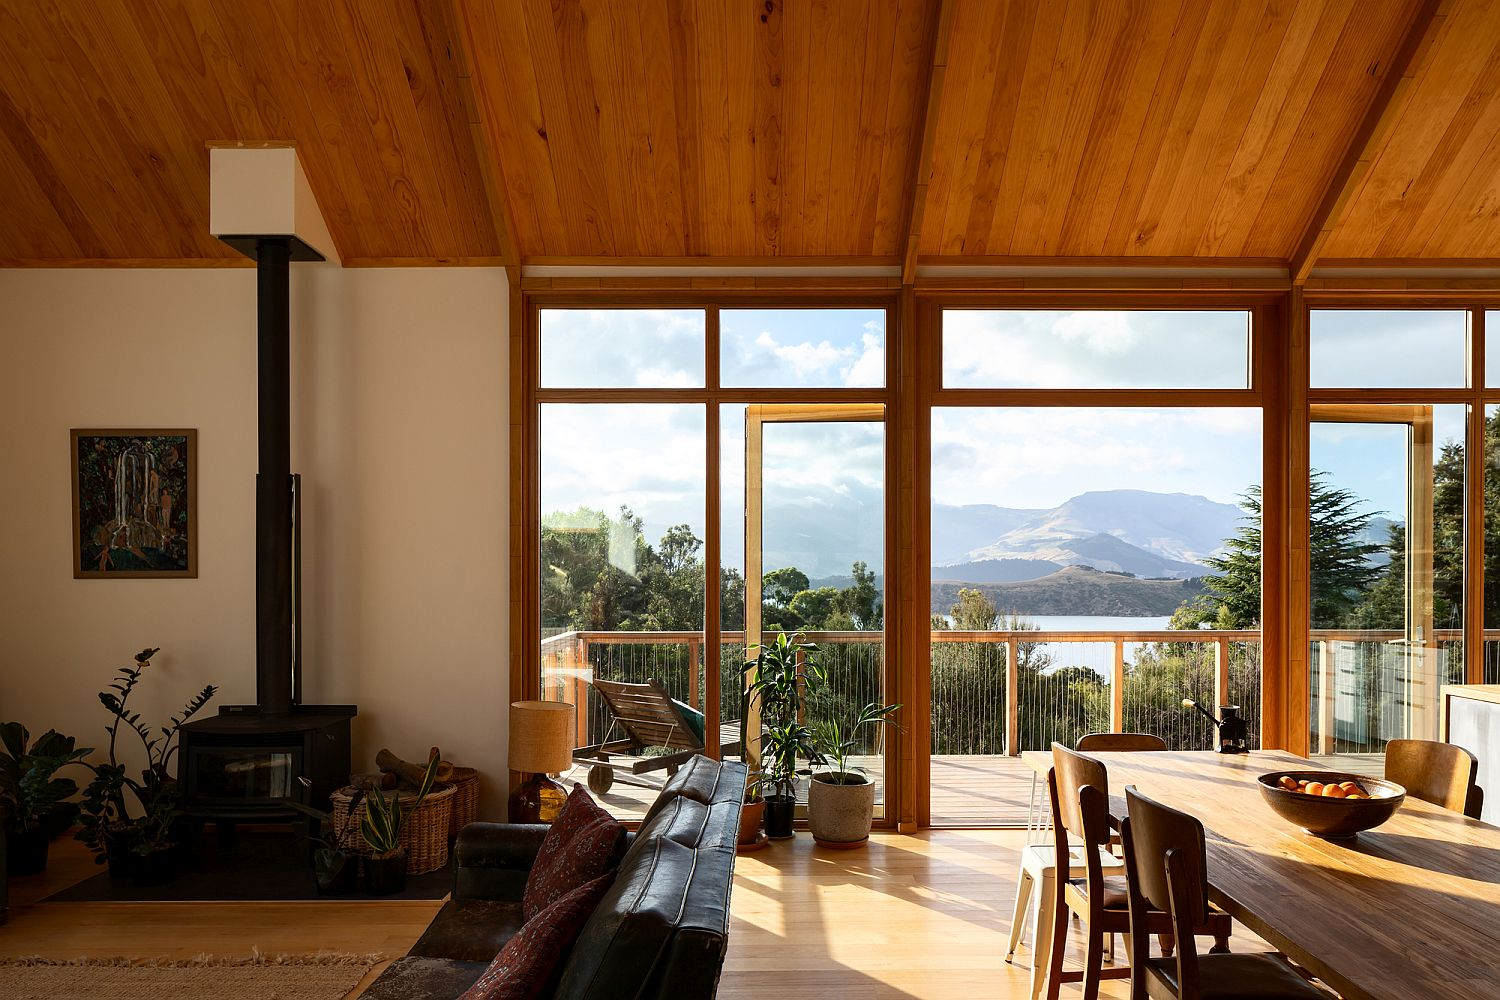 View of the picturesque Lyttelton Harbour from the living area of the house